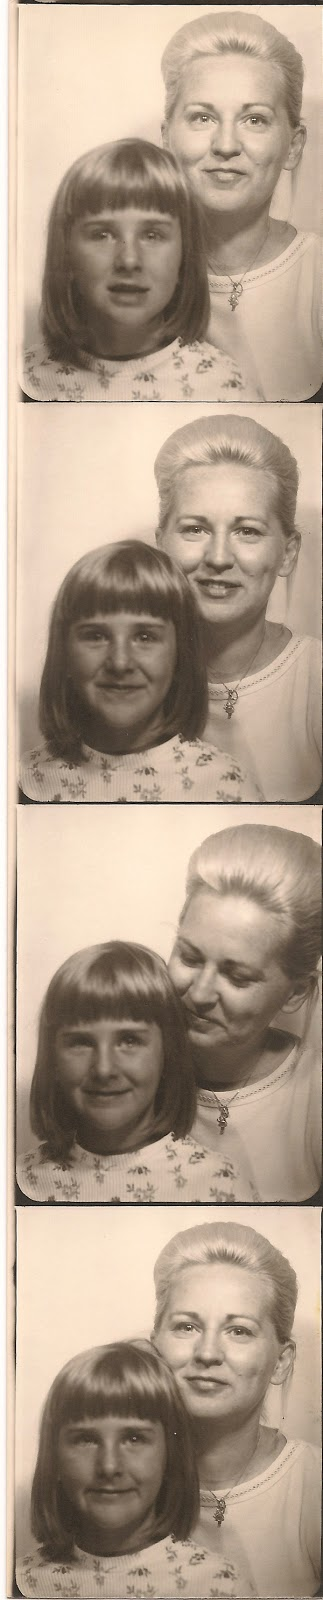 Photo booth film strip. Mary E. (Dixon) Traina and her daughter, Liz. Mid-1960's. Photo identified by and in the collection of E. Ackermann.